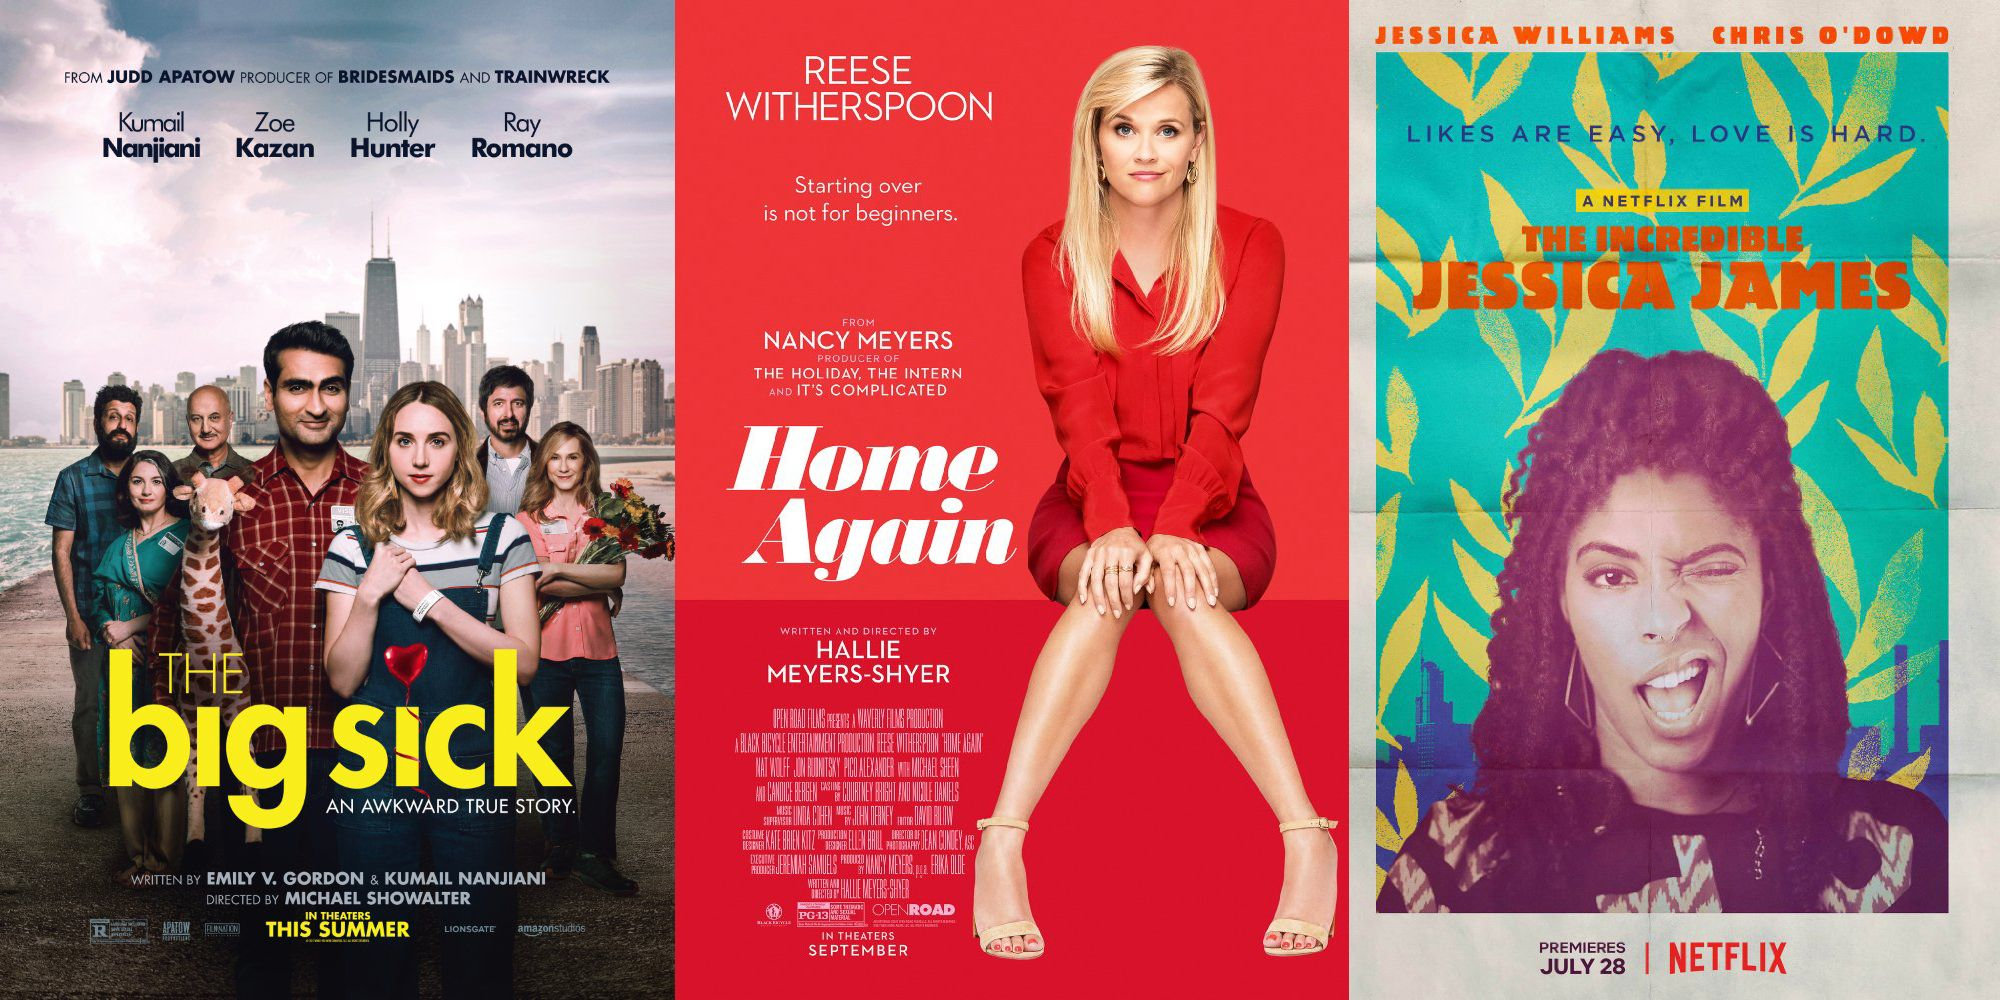 8 best romantic comedies in 2017 - top 2017 rom com movies we love